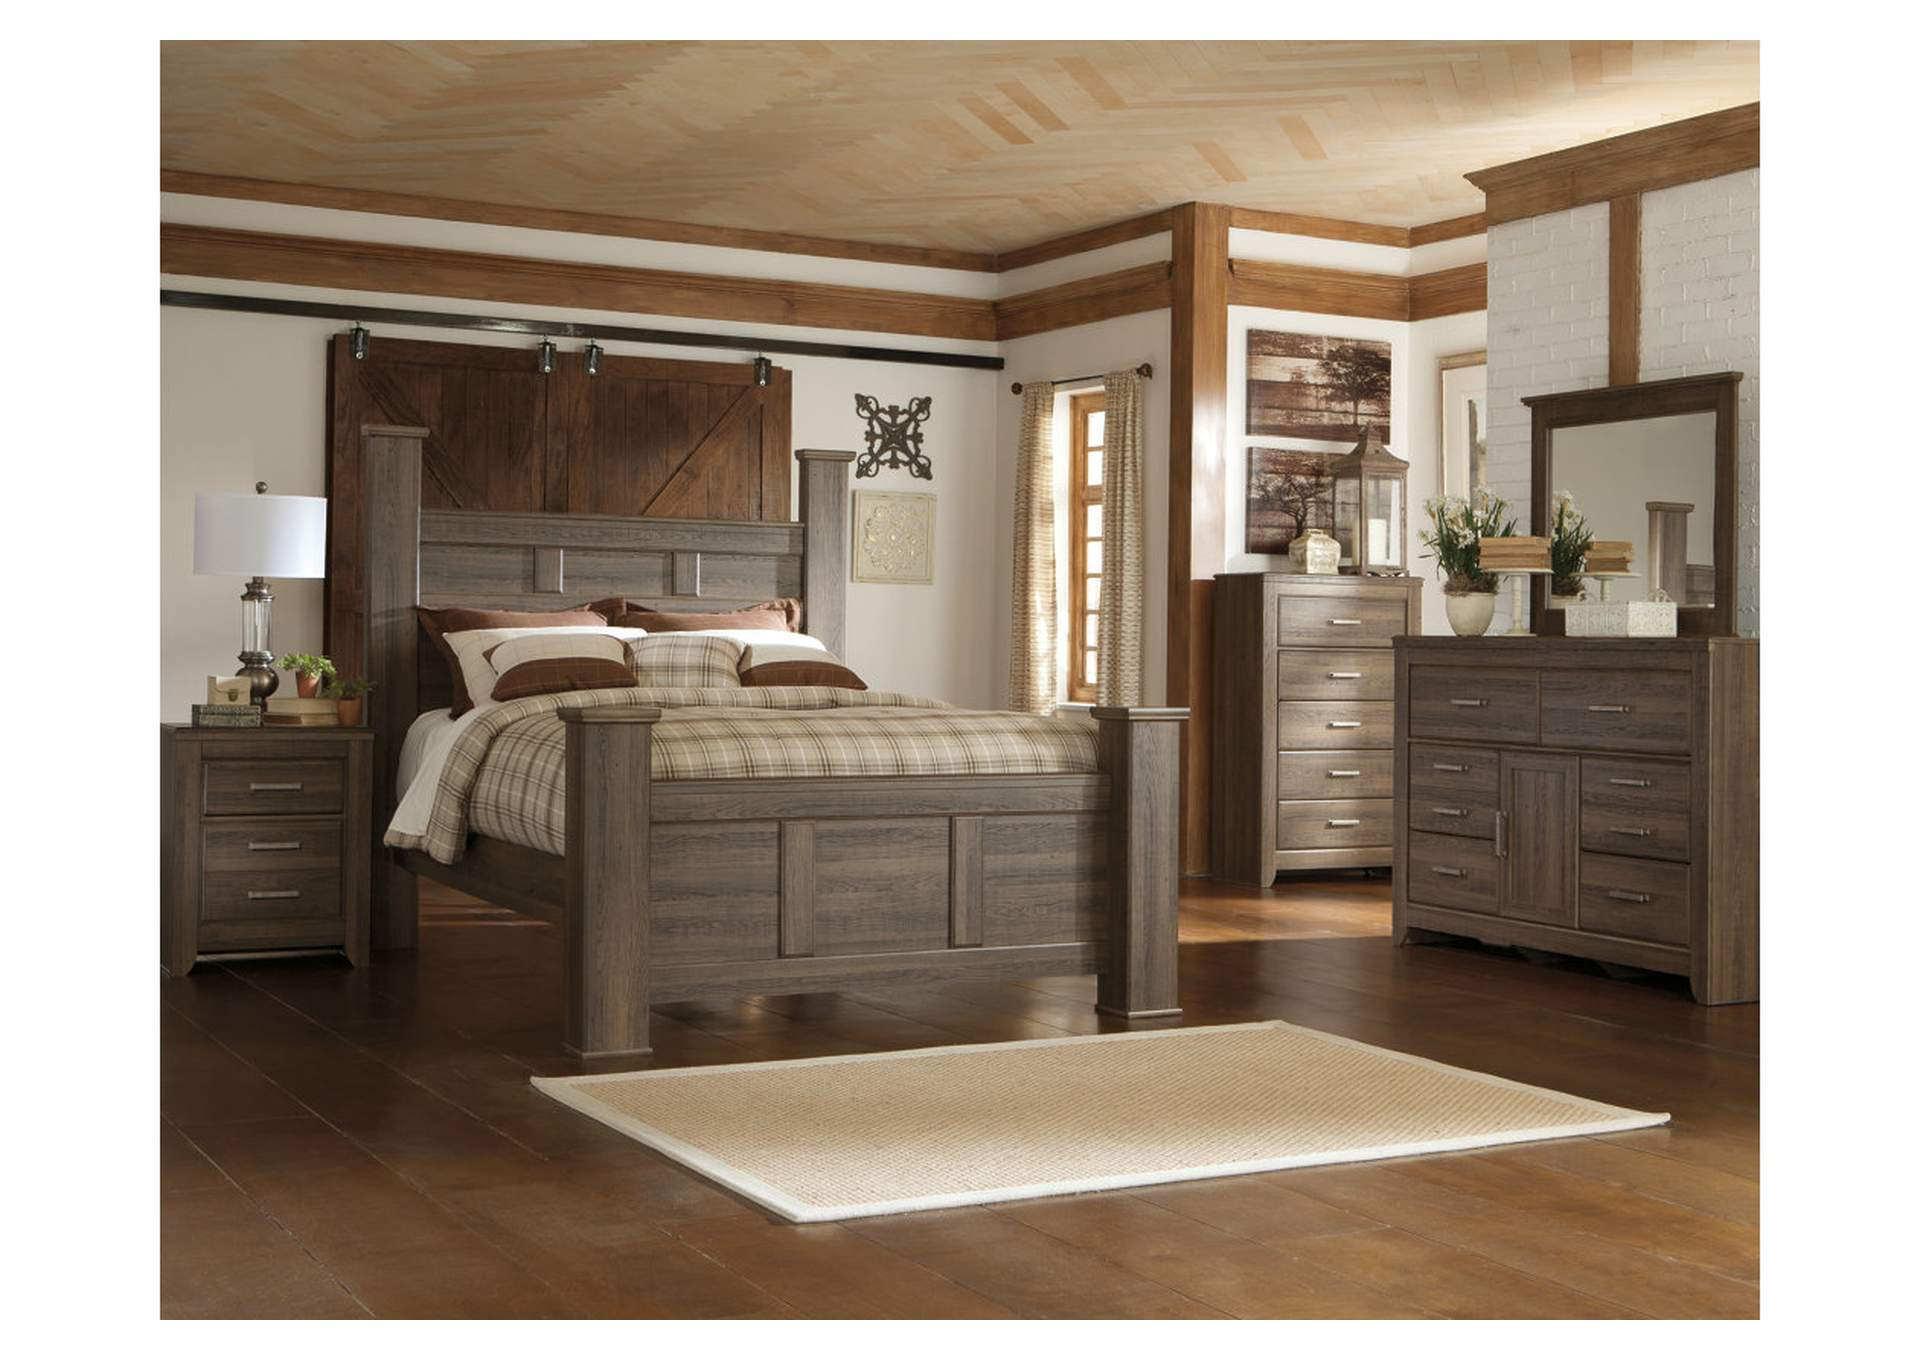 Juararo King Poster Bed w/Dresser, Mirror & Drawer Chest,Signature Design By Ashley